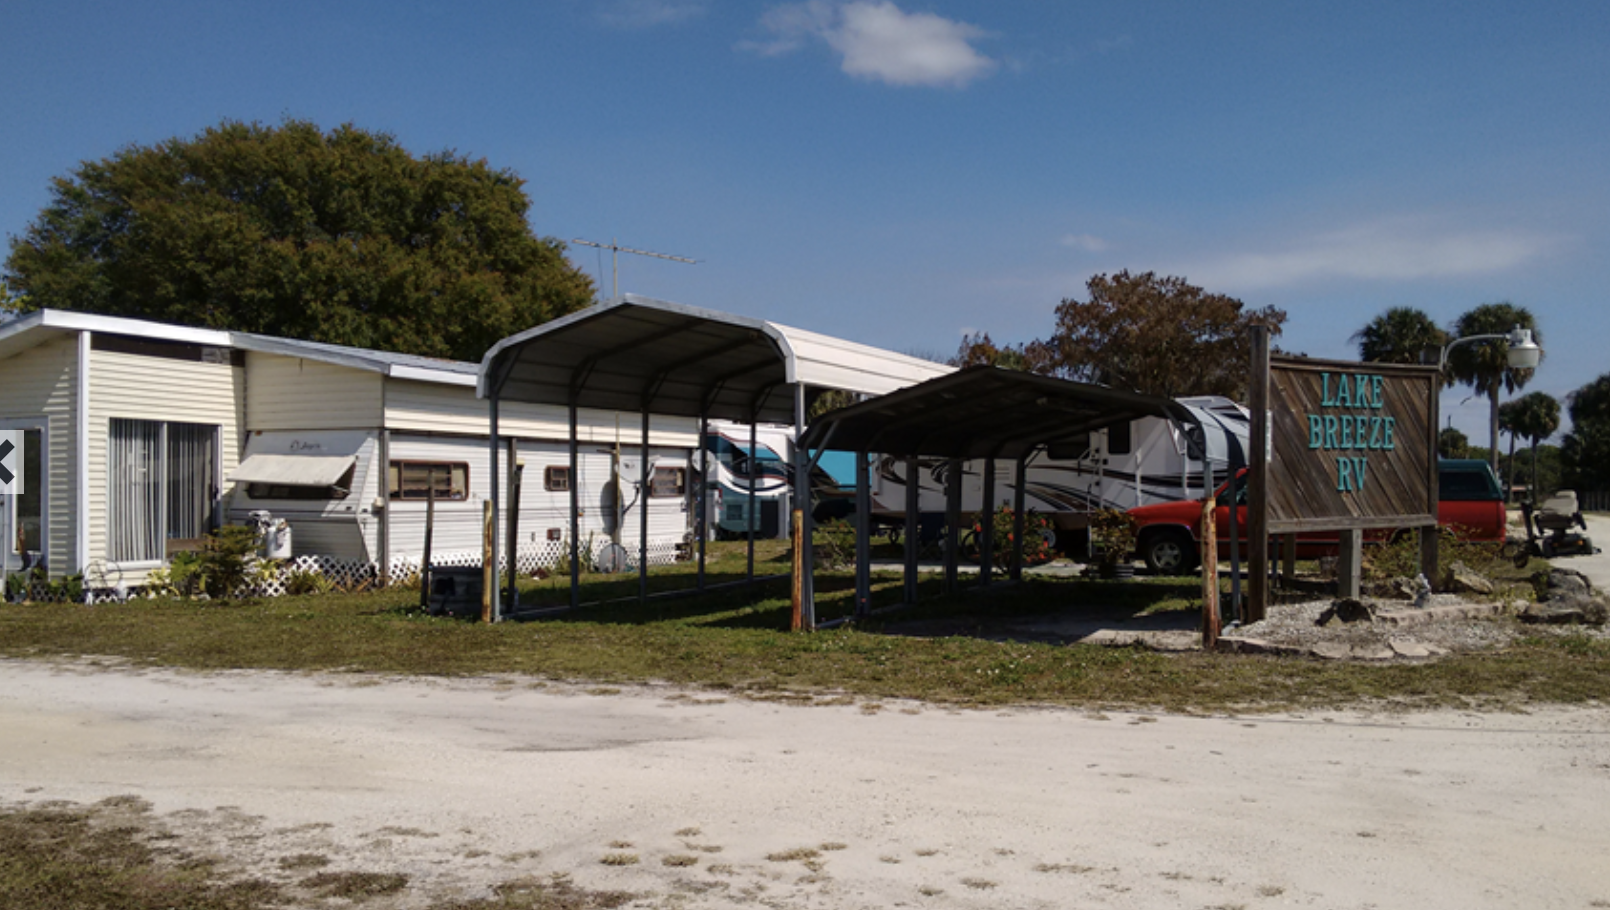 Lake Breeze RV Park, LLC